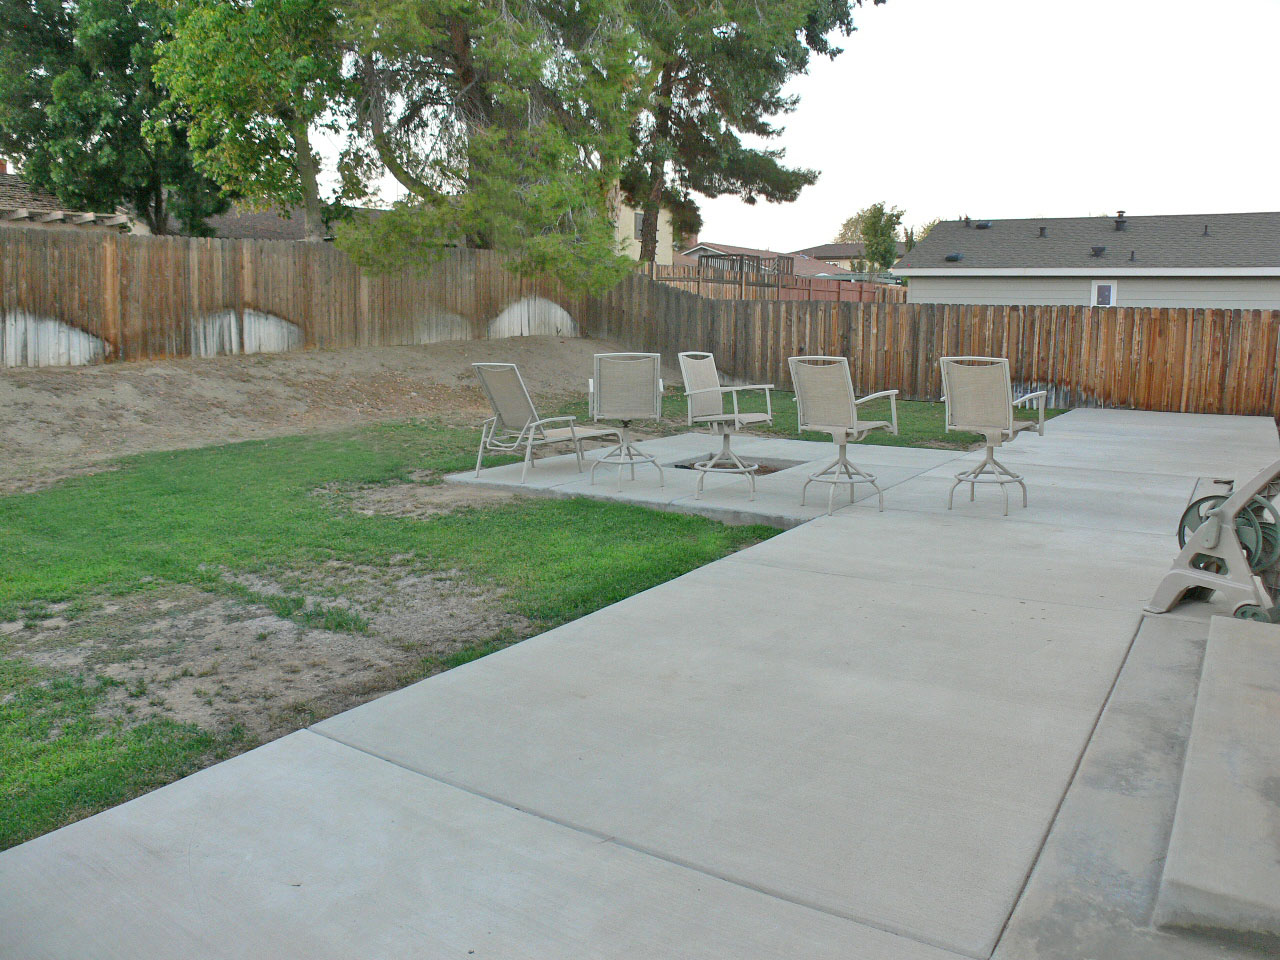 Spacious backyard is a blank slate for whatever type of entertaining and fun you have in mind (basketball court, pool, playground, volleyball, etc).